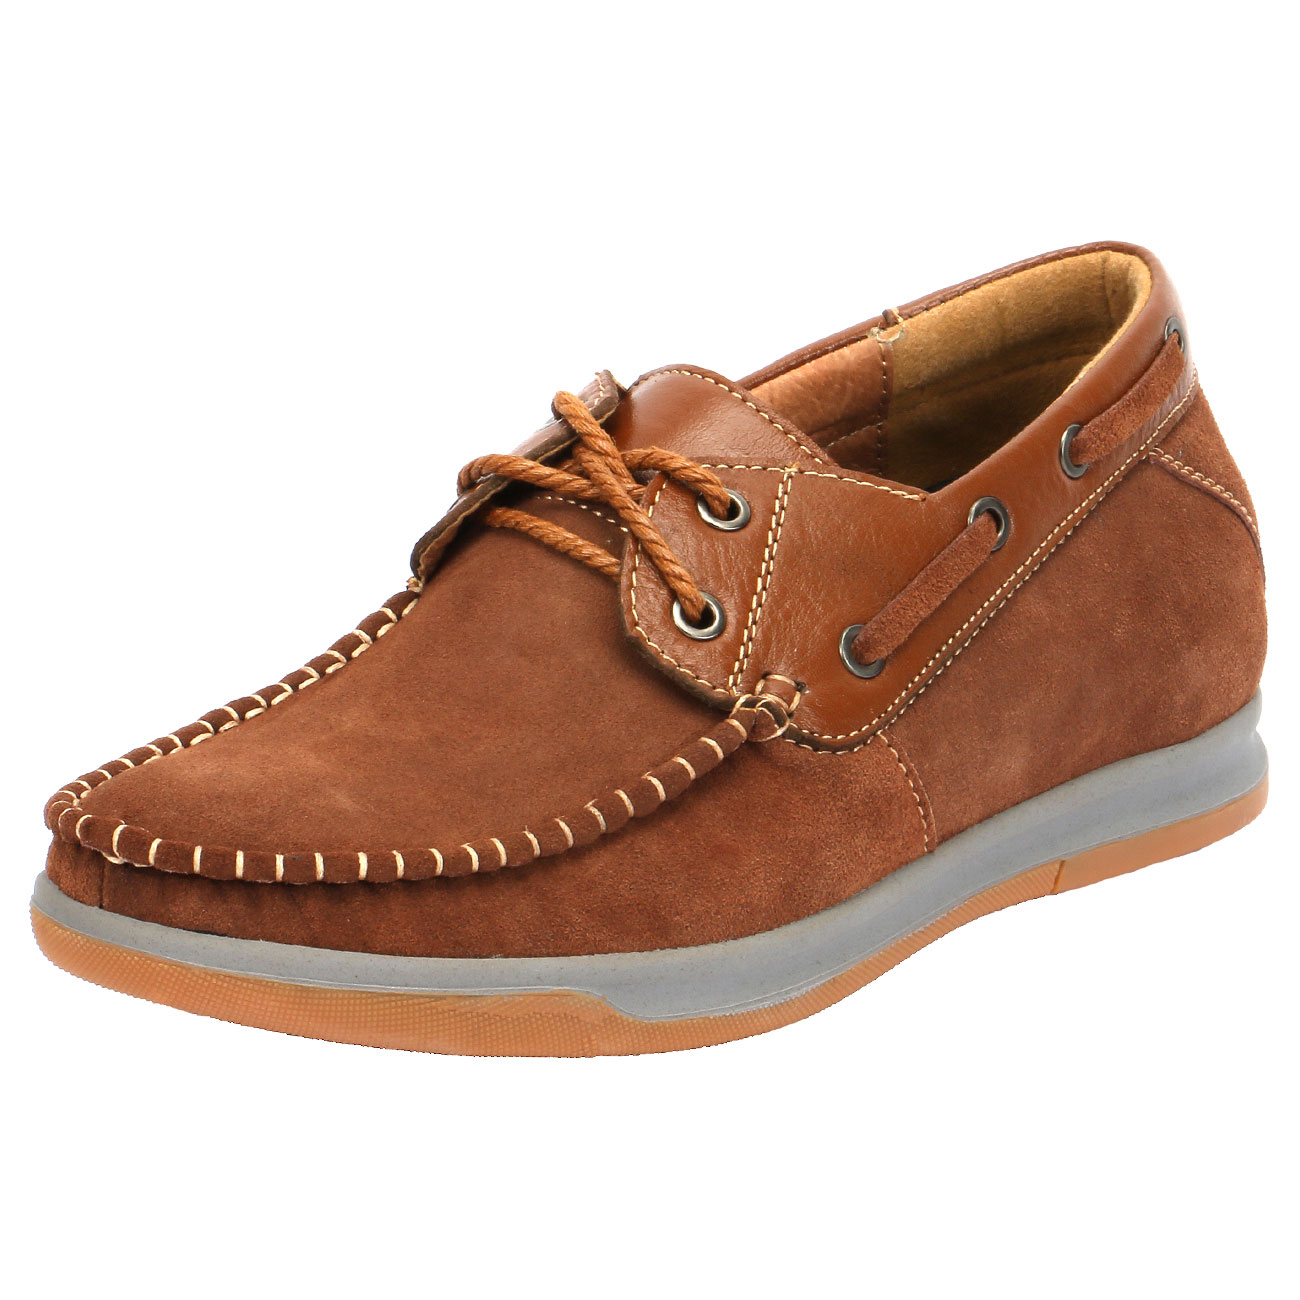 Casual elevator shoes for men-1